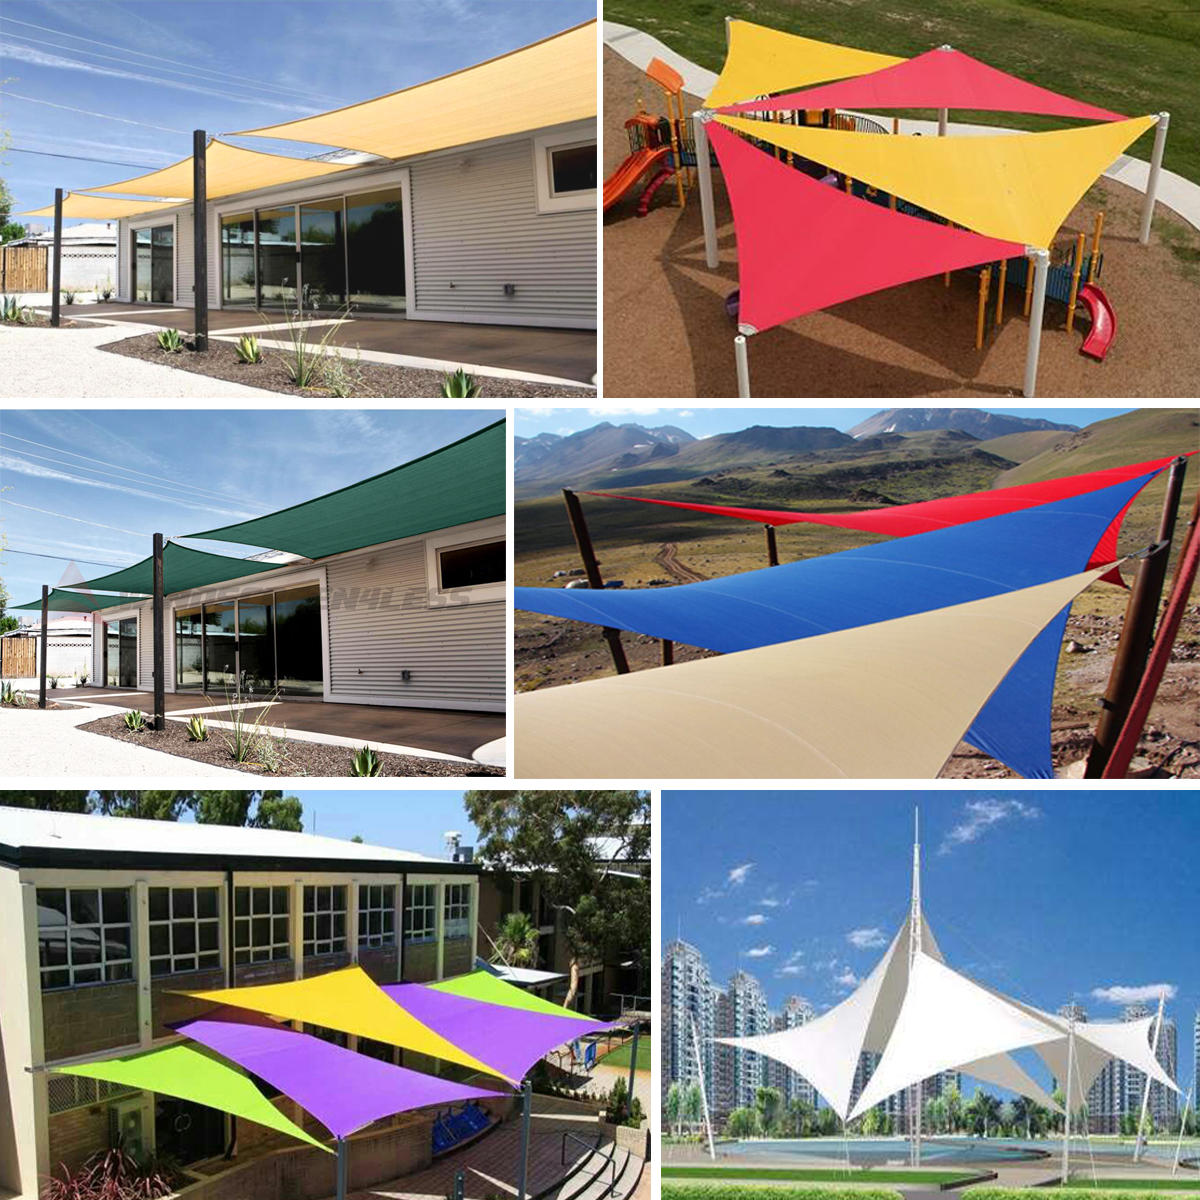 5m Triangle Shade Sail Net Cloth Outdoor Swimming Pool Waterproof Sun Shade Sail Prevent Uv Canopy Home Garden Awning Cover Cap Garden Supplies Shade Sails & Nets